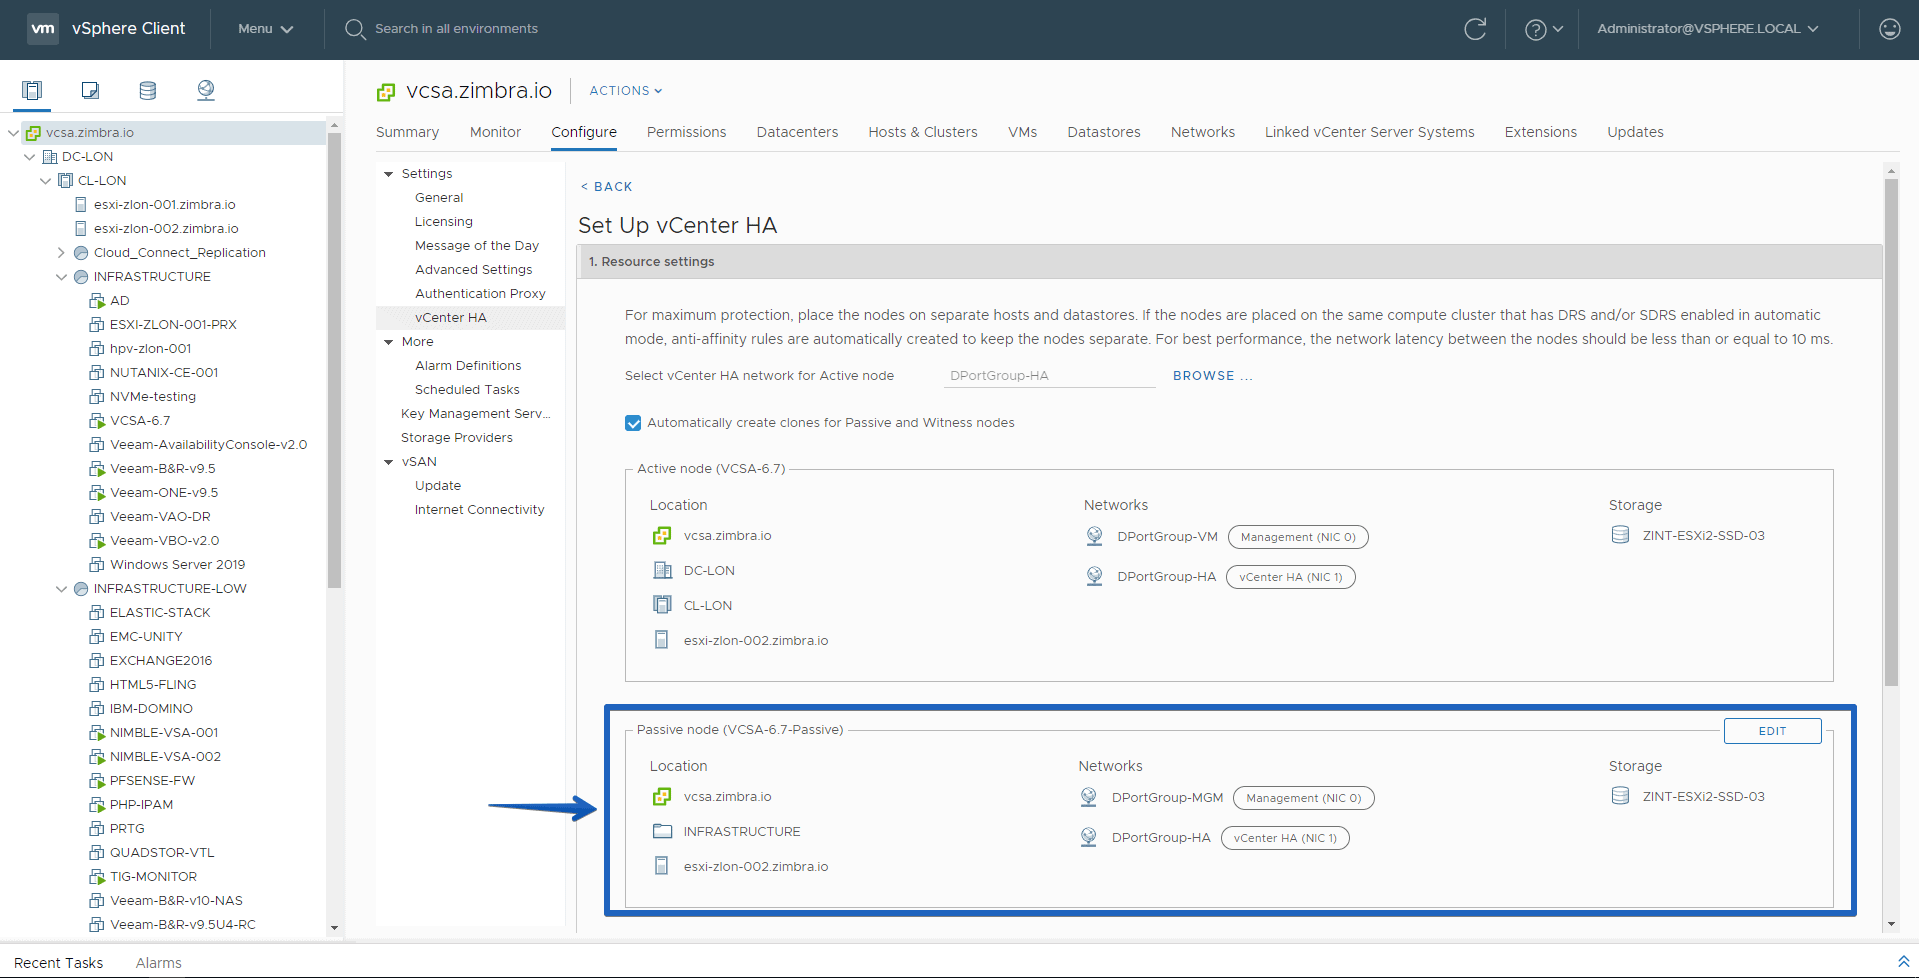 VMware: How to configure VCSA 6 7 HA in vSphere Client HTML5, the